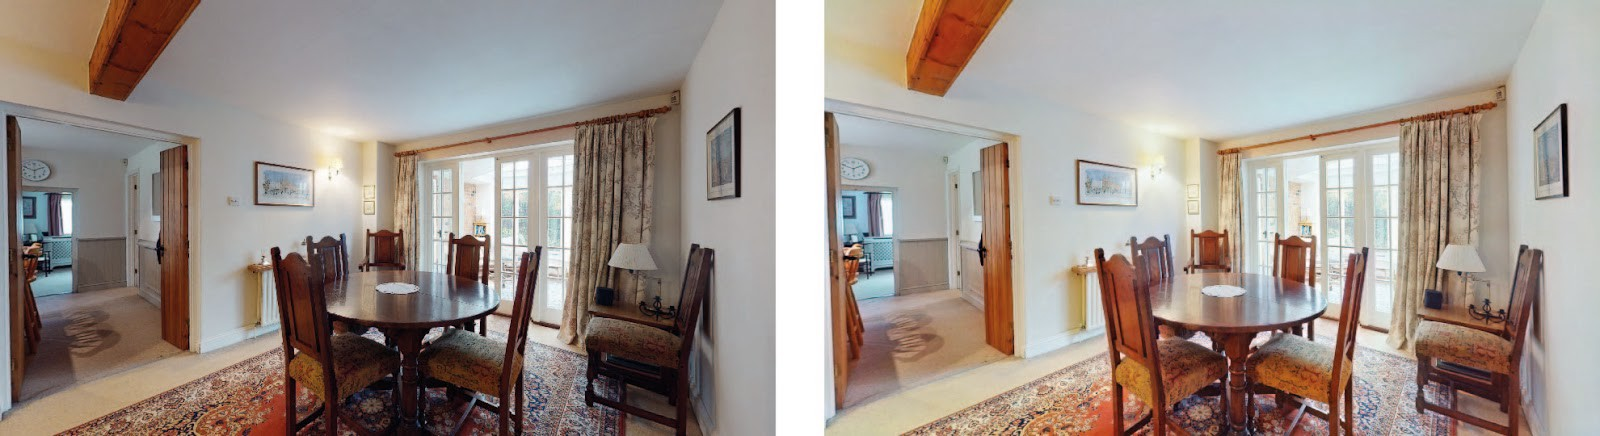 Interior shots: photos before enhancement on the left, and after Autoenhance.ai photo enhancement on the right.